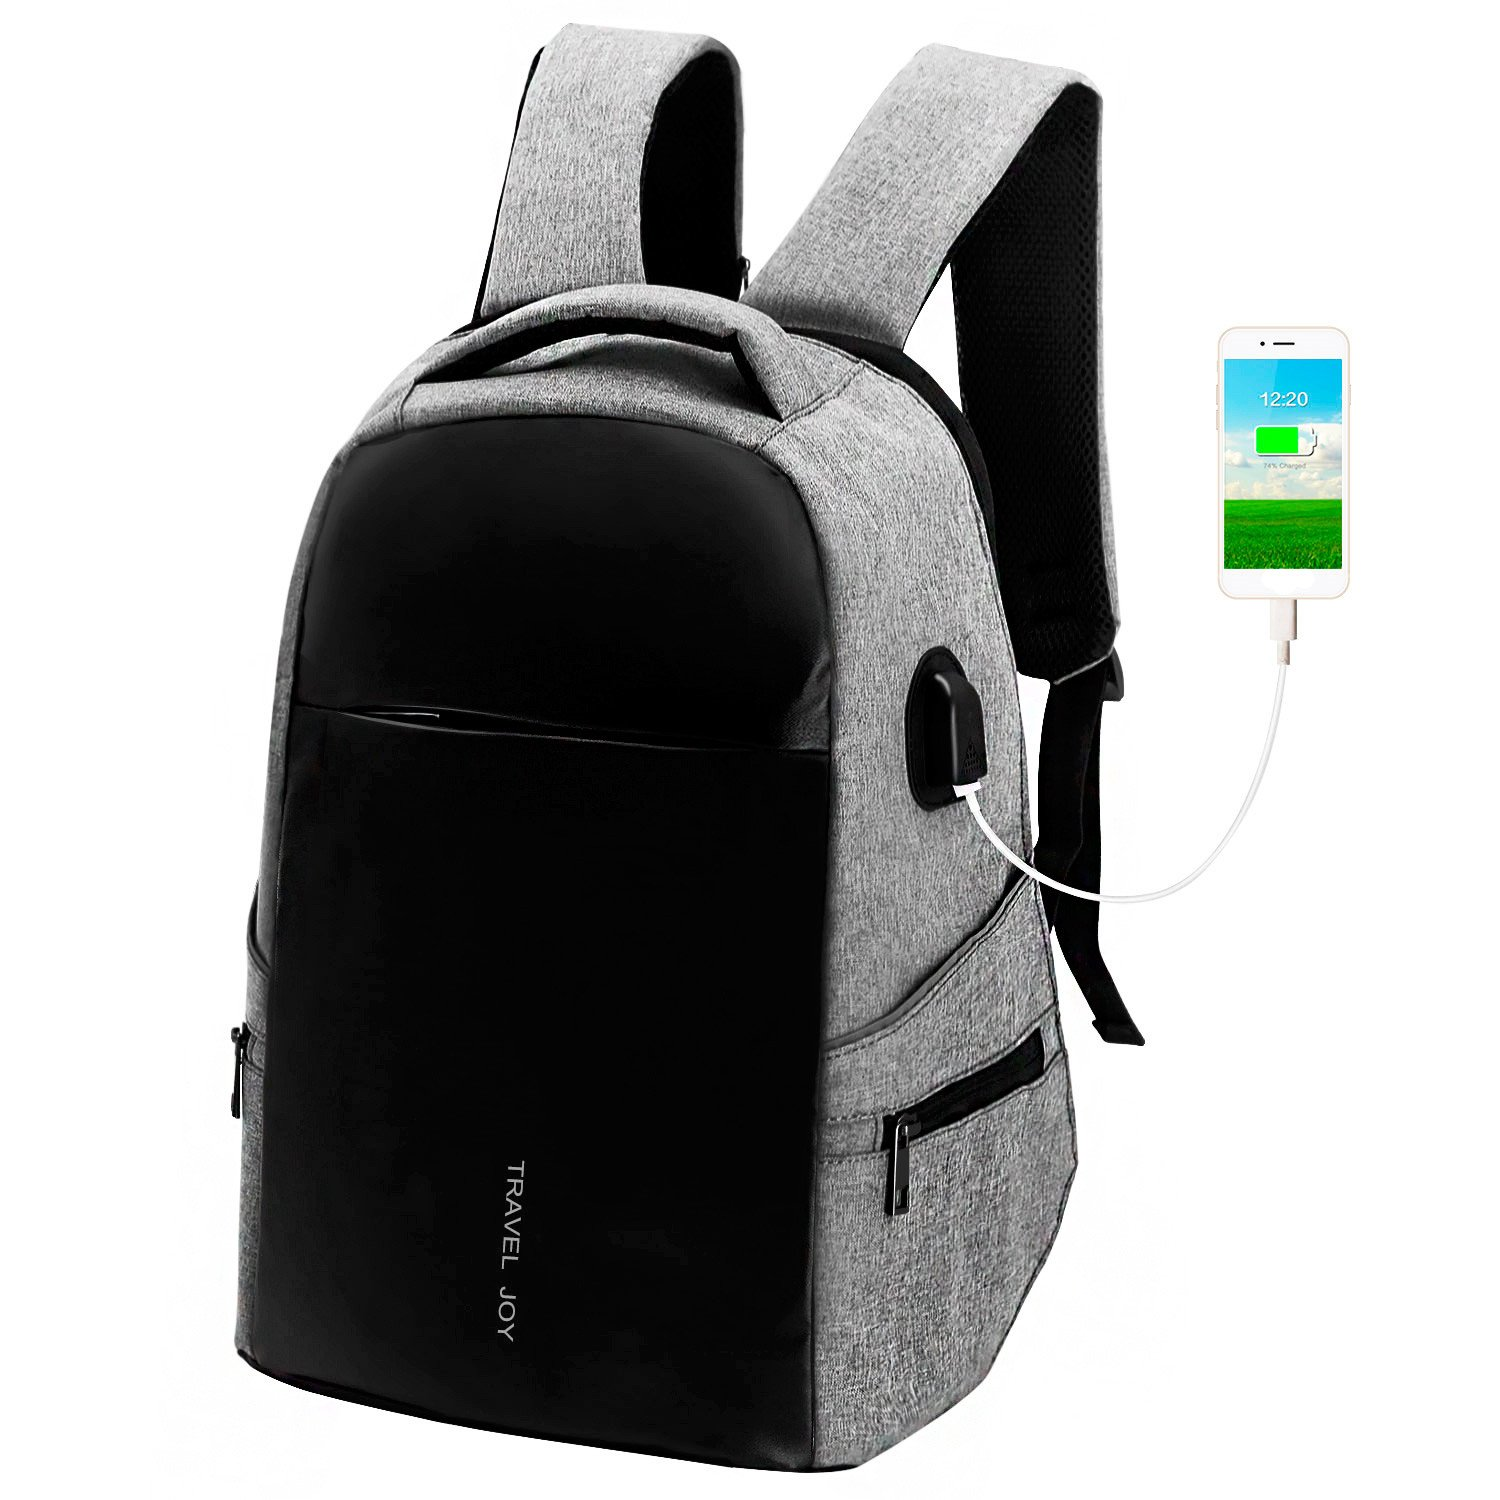 9c01f10bfa20 Laptop Backpack, Slim Business Computer Backpack with USB Charging ...